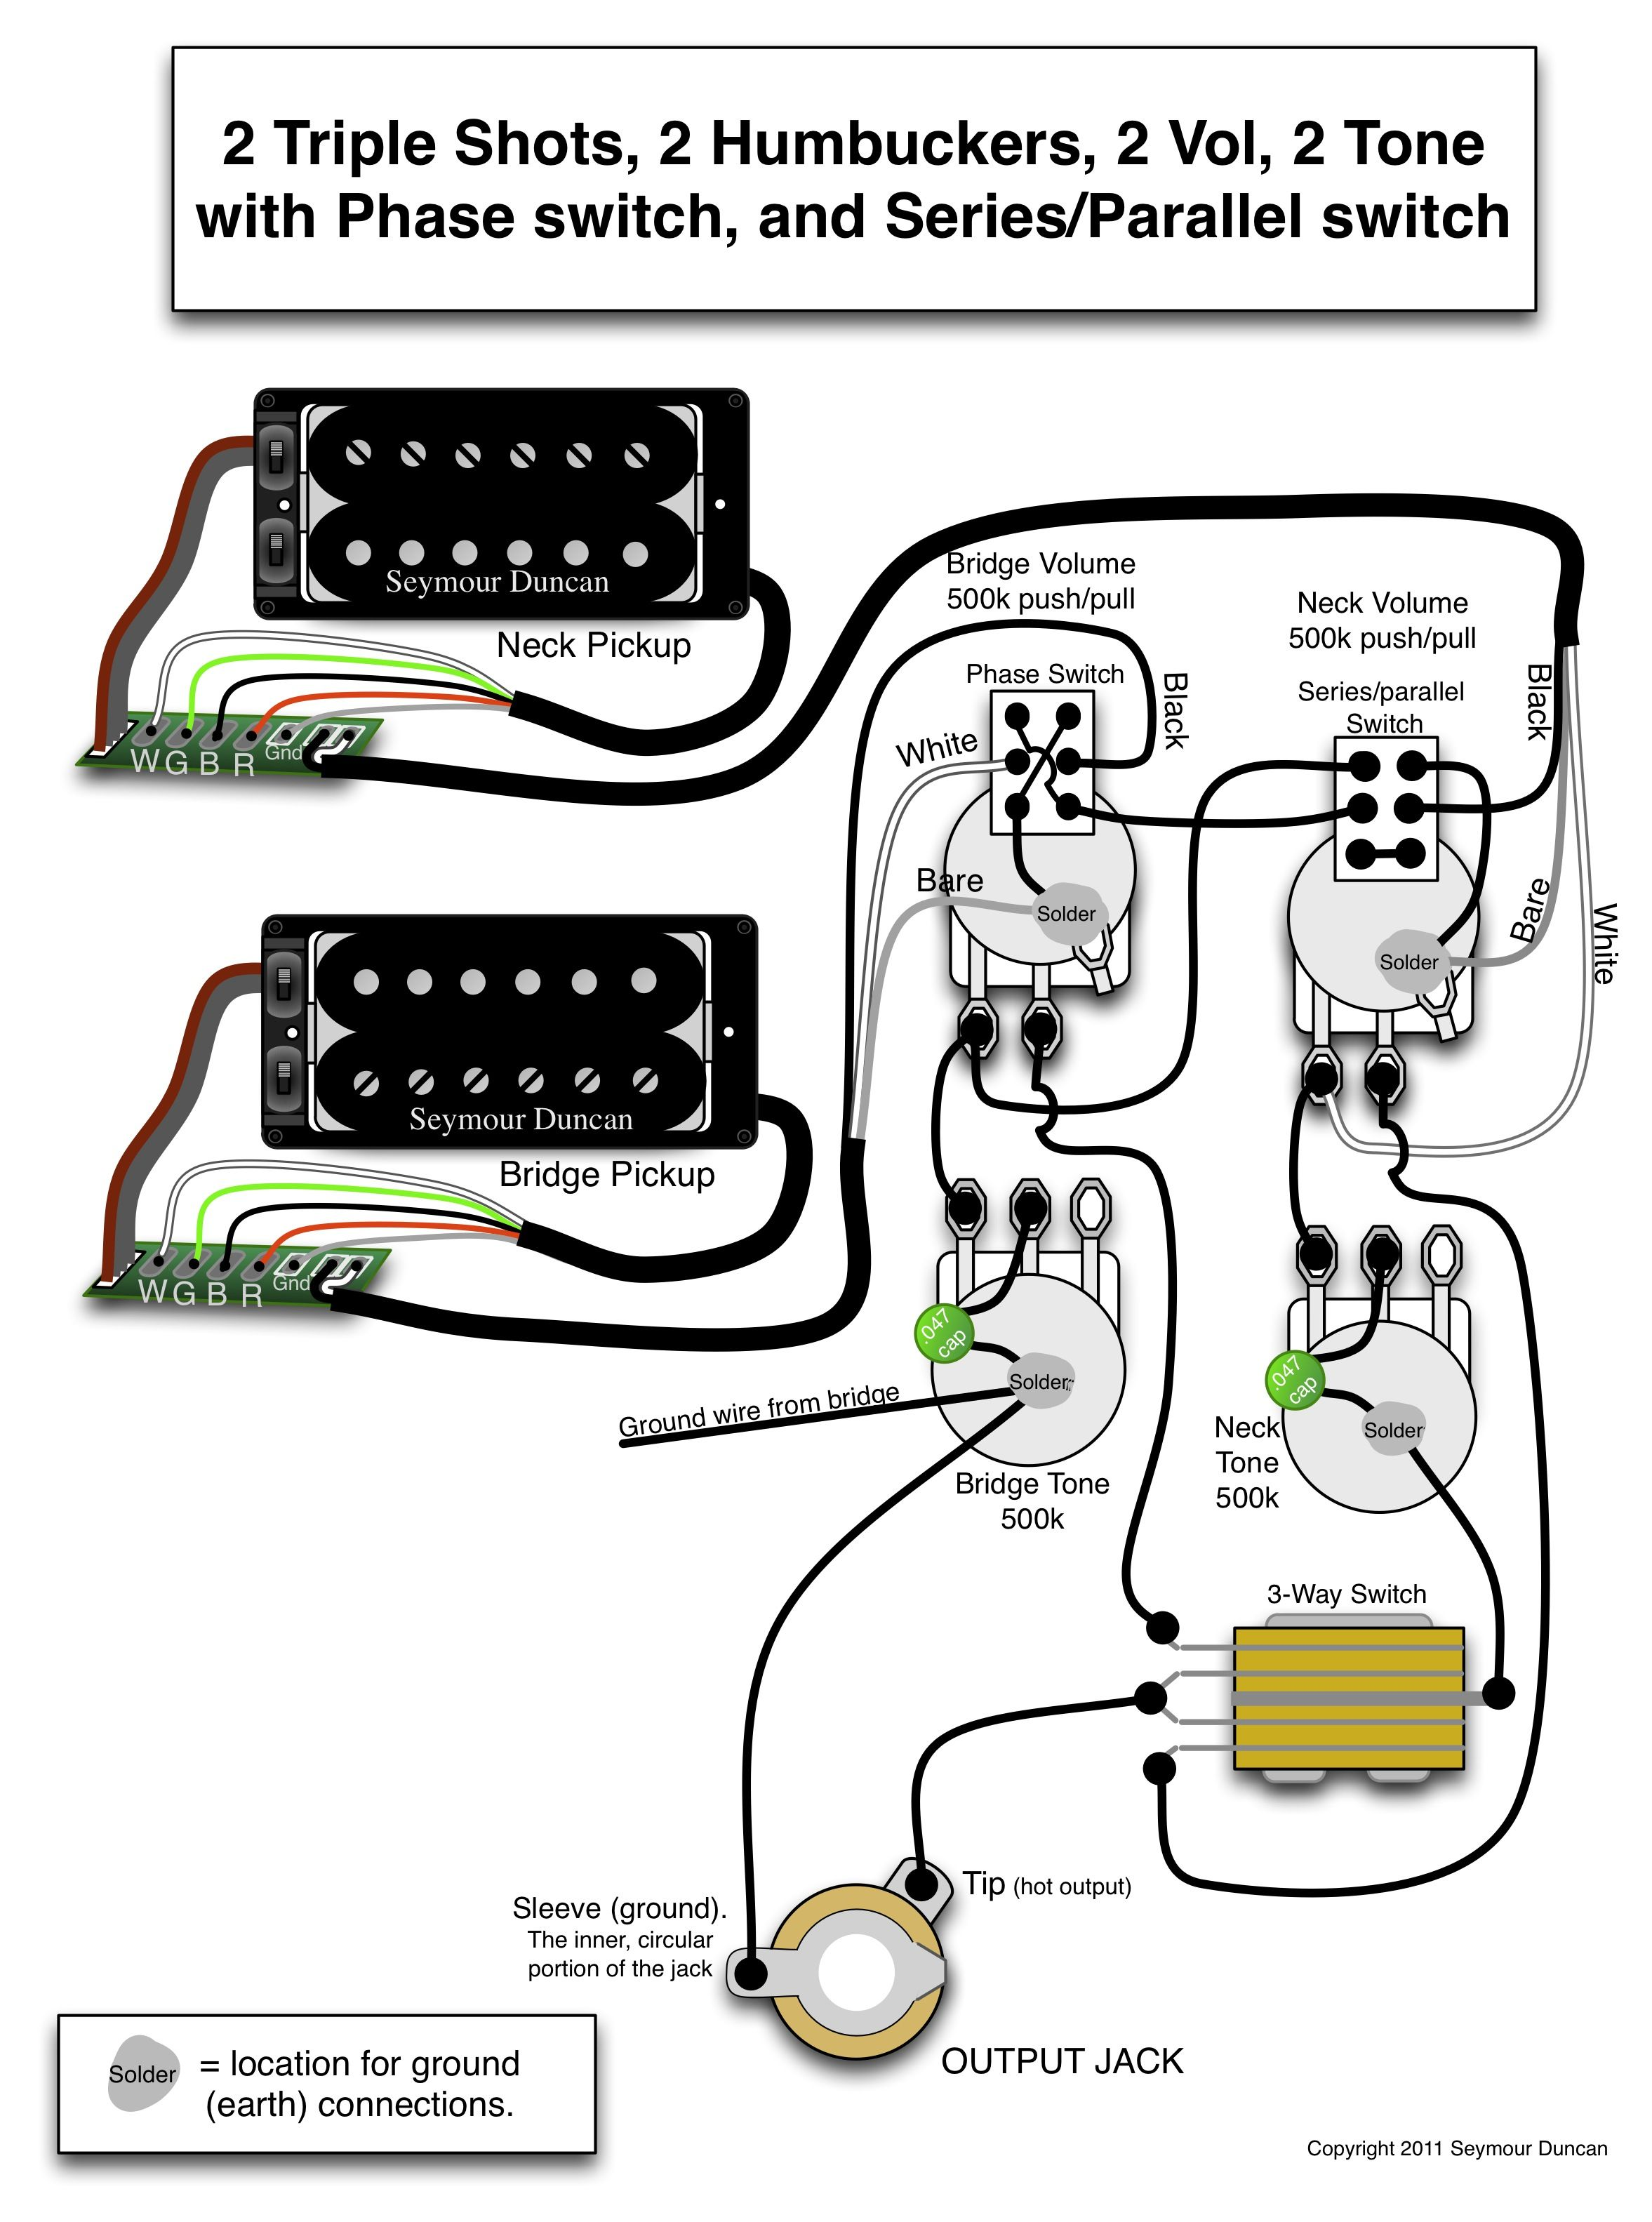 seymour duncan wiring diagram 2 triple shots 2 humbuckers 2 vol 2 tone one with phase. Black Bedroom Furniture Sets. Home Design Ideas